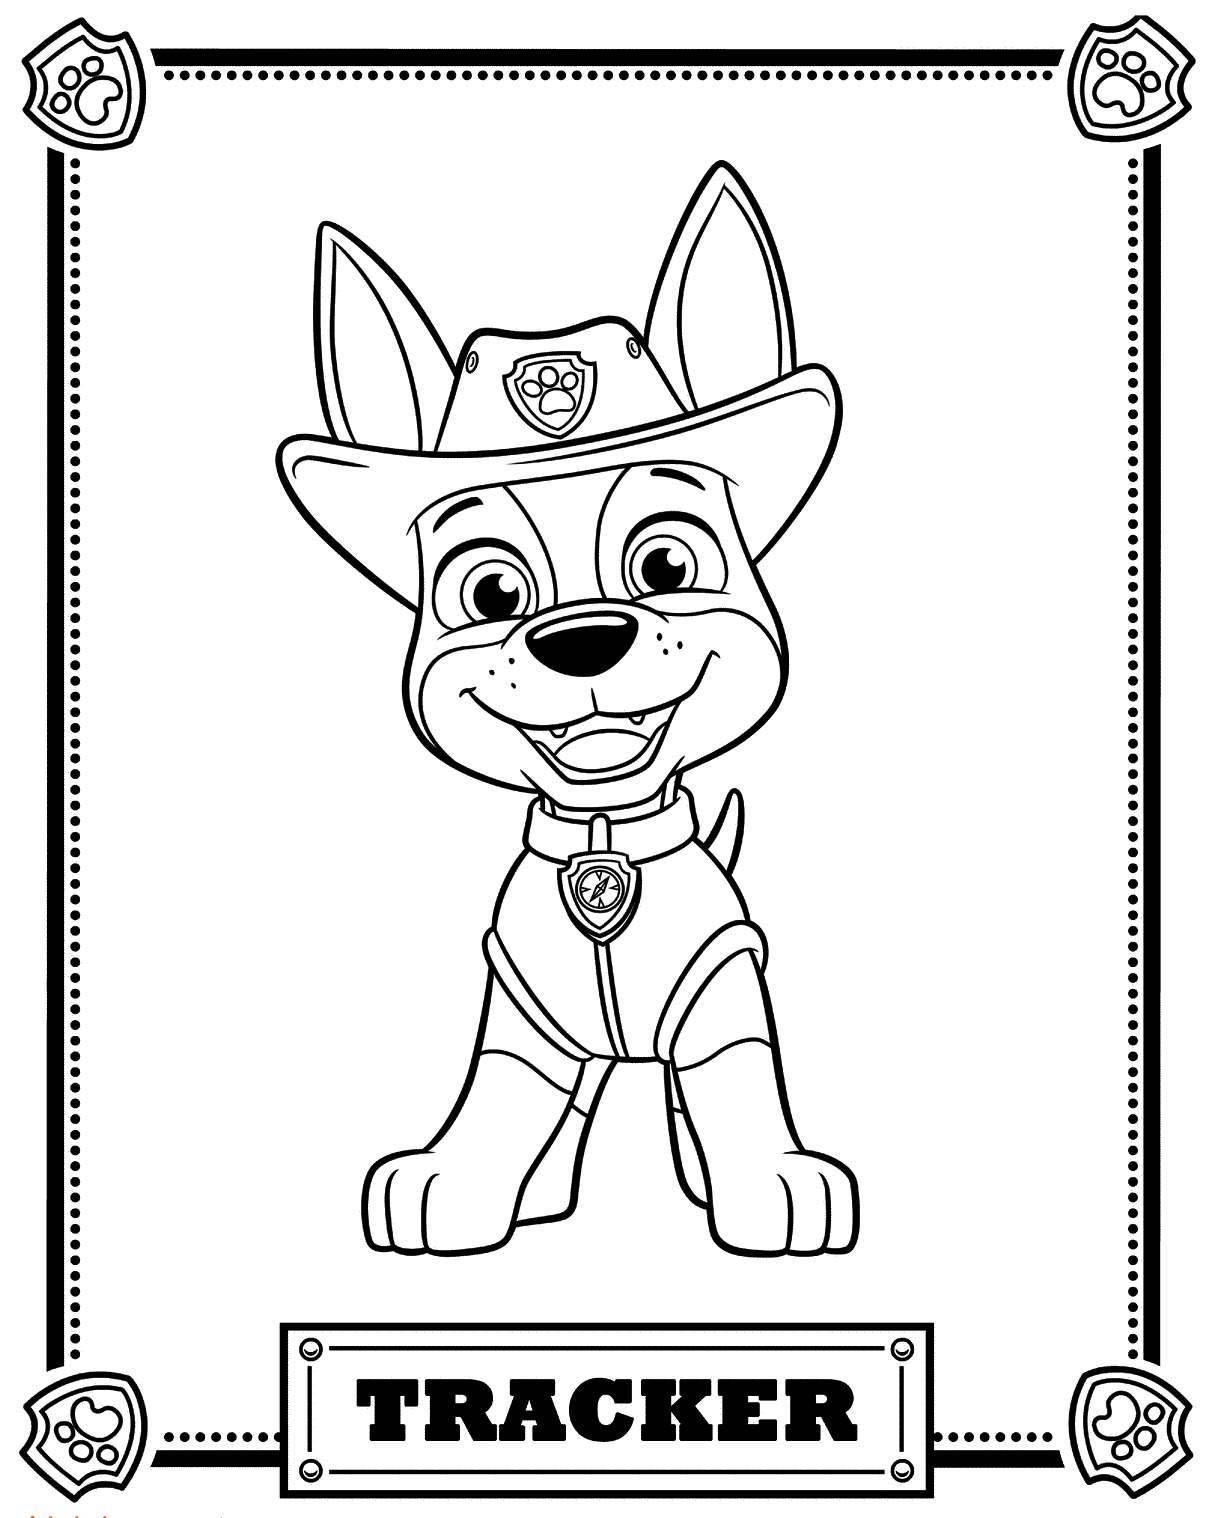 Top 10 Paw Patrol Coloring Pages Paw Patrol Coloring Paw Patrol Coloring Pages Paw Patrol Printables